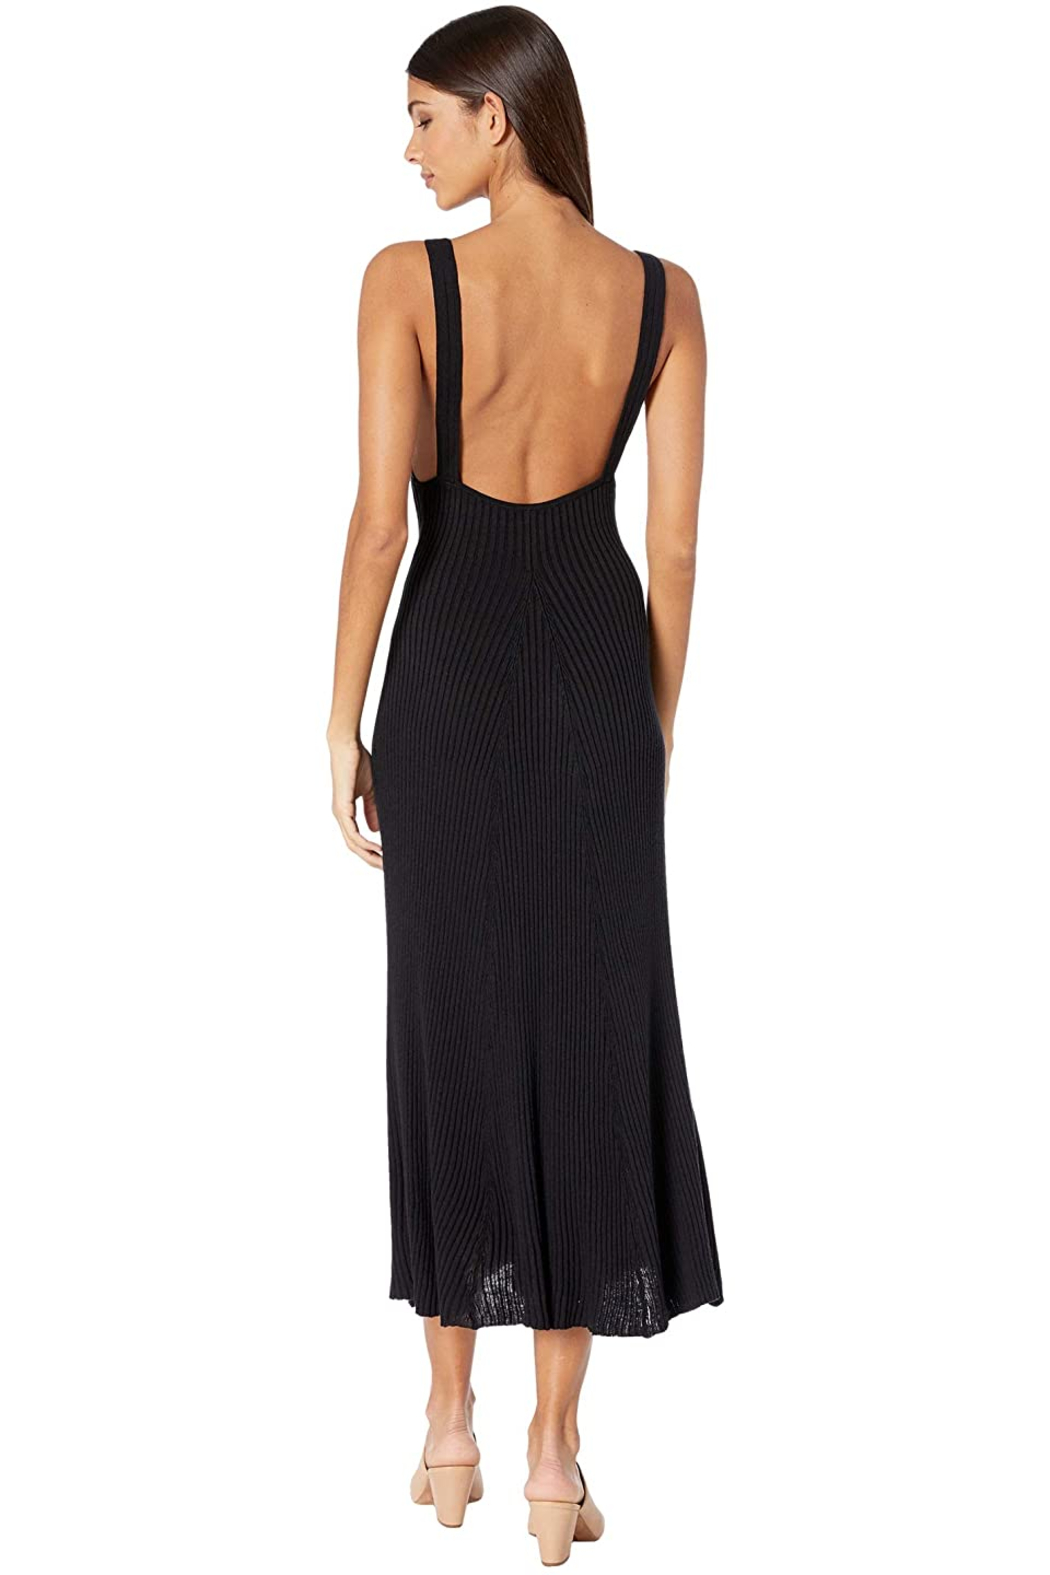 Free People Sweet Slip Dress in Black - Side Cropped Image